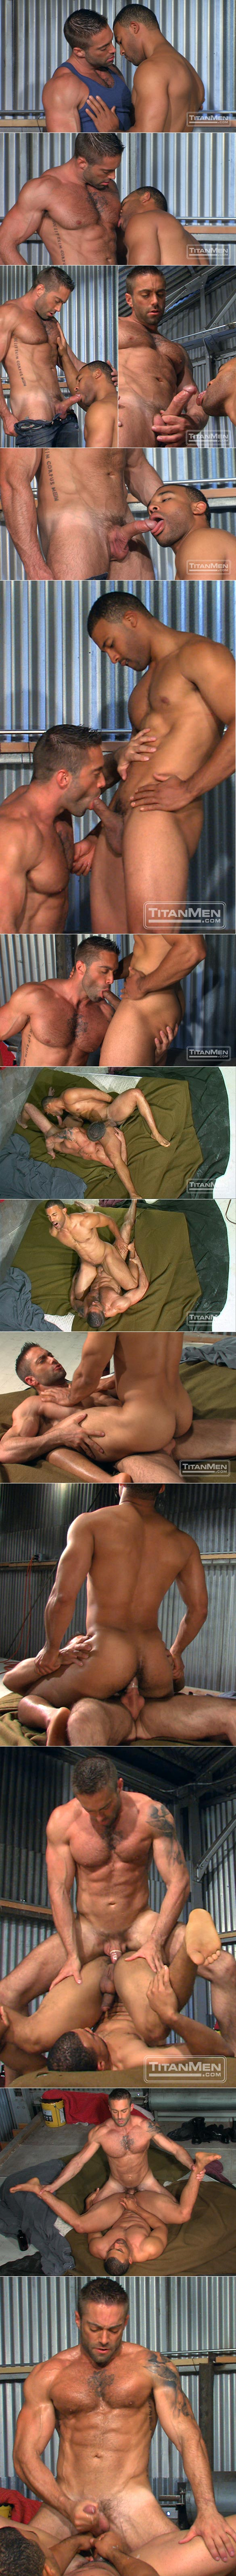 "TitanMen: Jake Genesis fucks Jay Bentley in ""Momentum"""